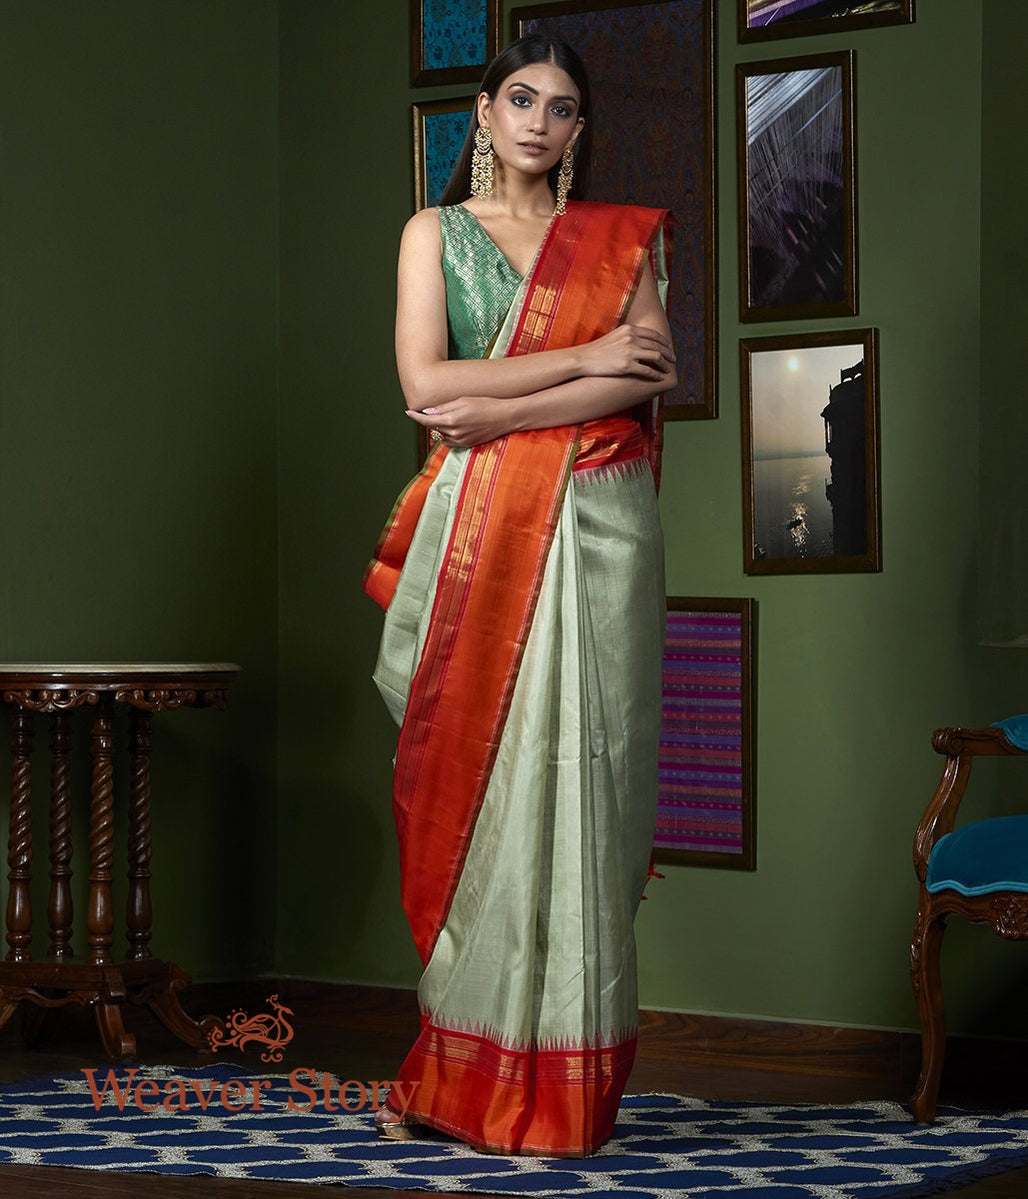 Handwoven Beige Kanjivaram Saree with Orange Temple Border